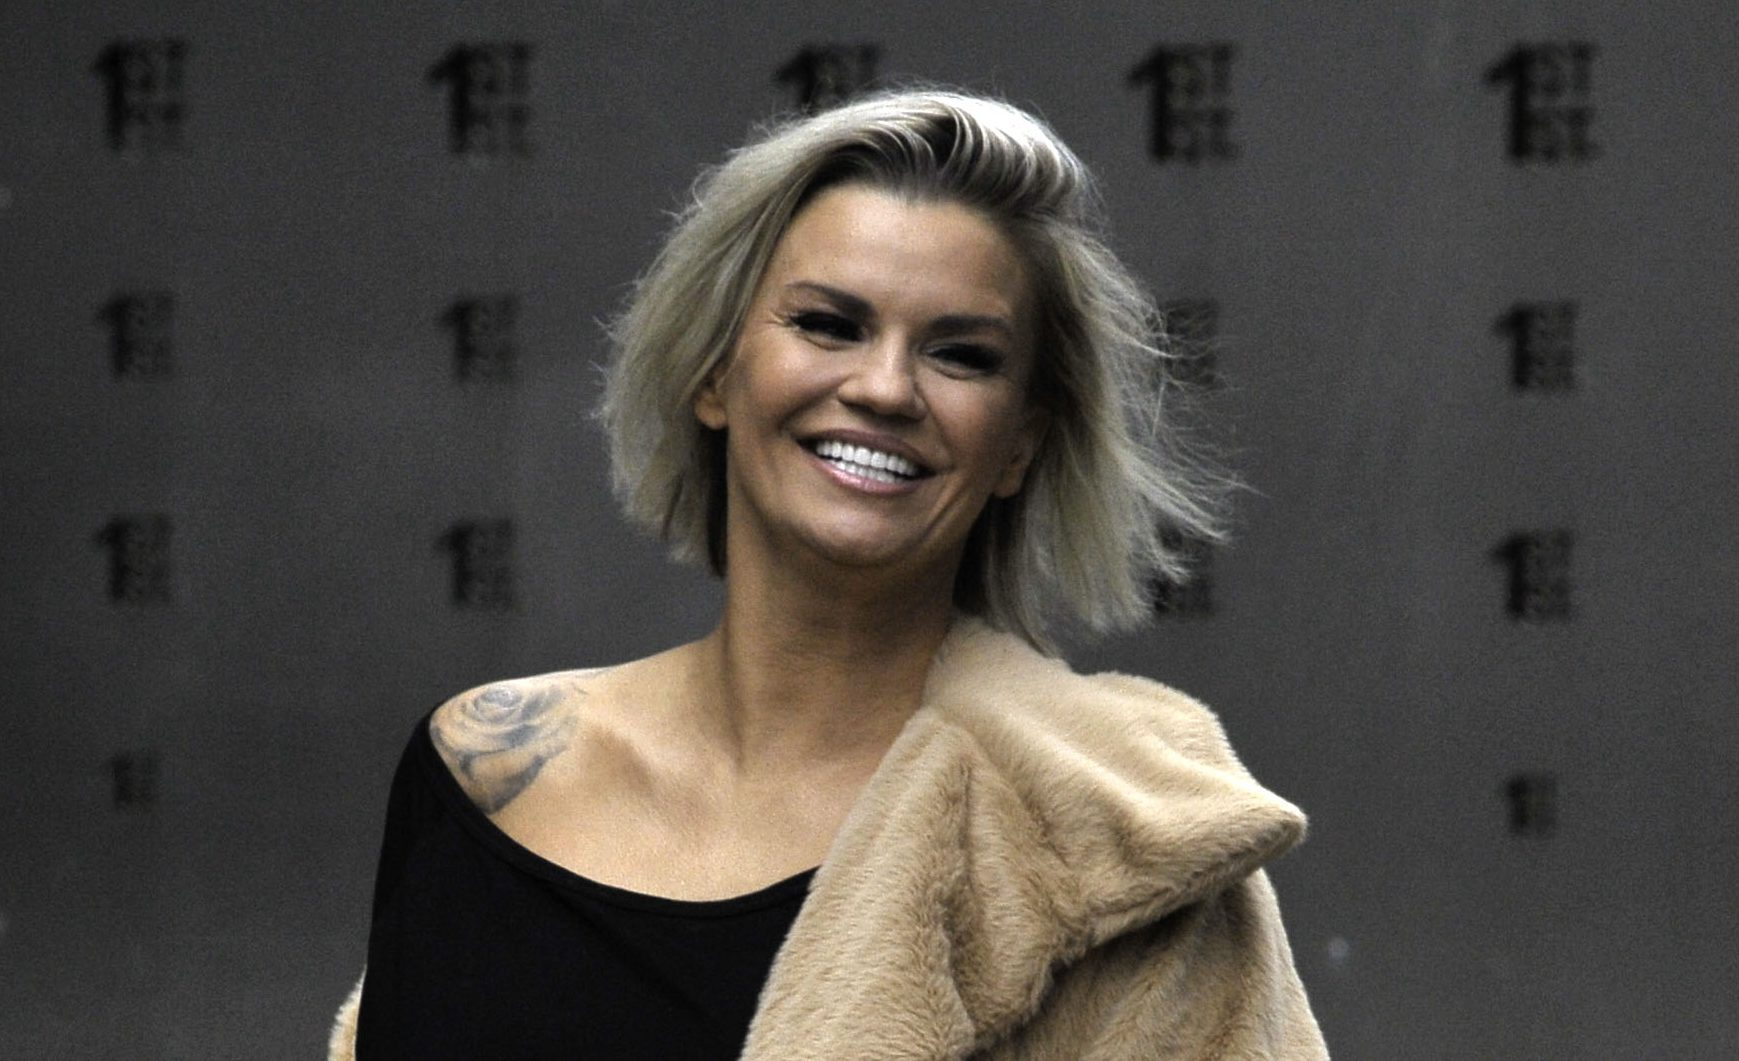 Kerry Katona's youngest daughter has rotten teeth after 'being fed sugar from spoon' by ex